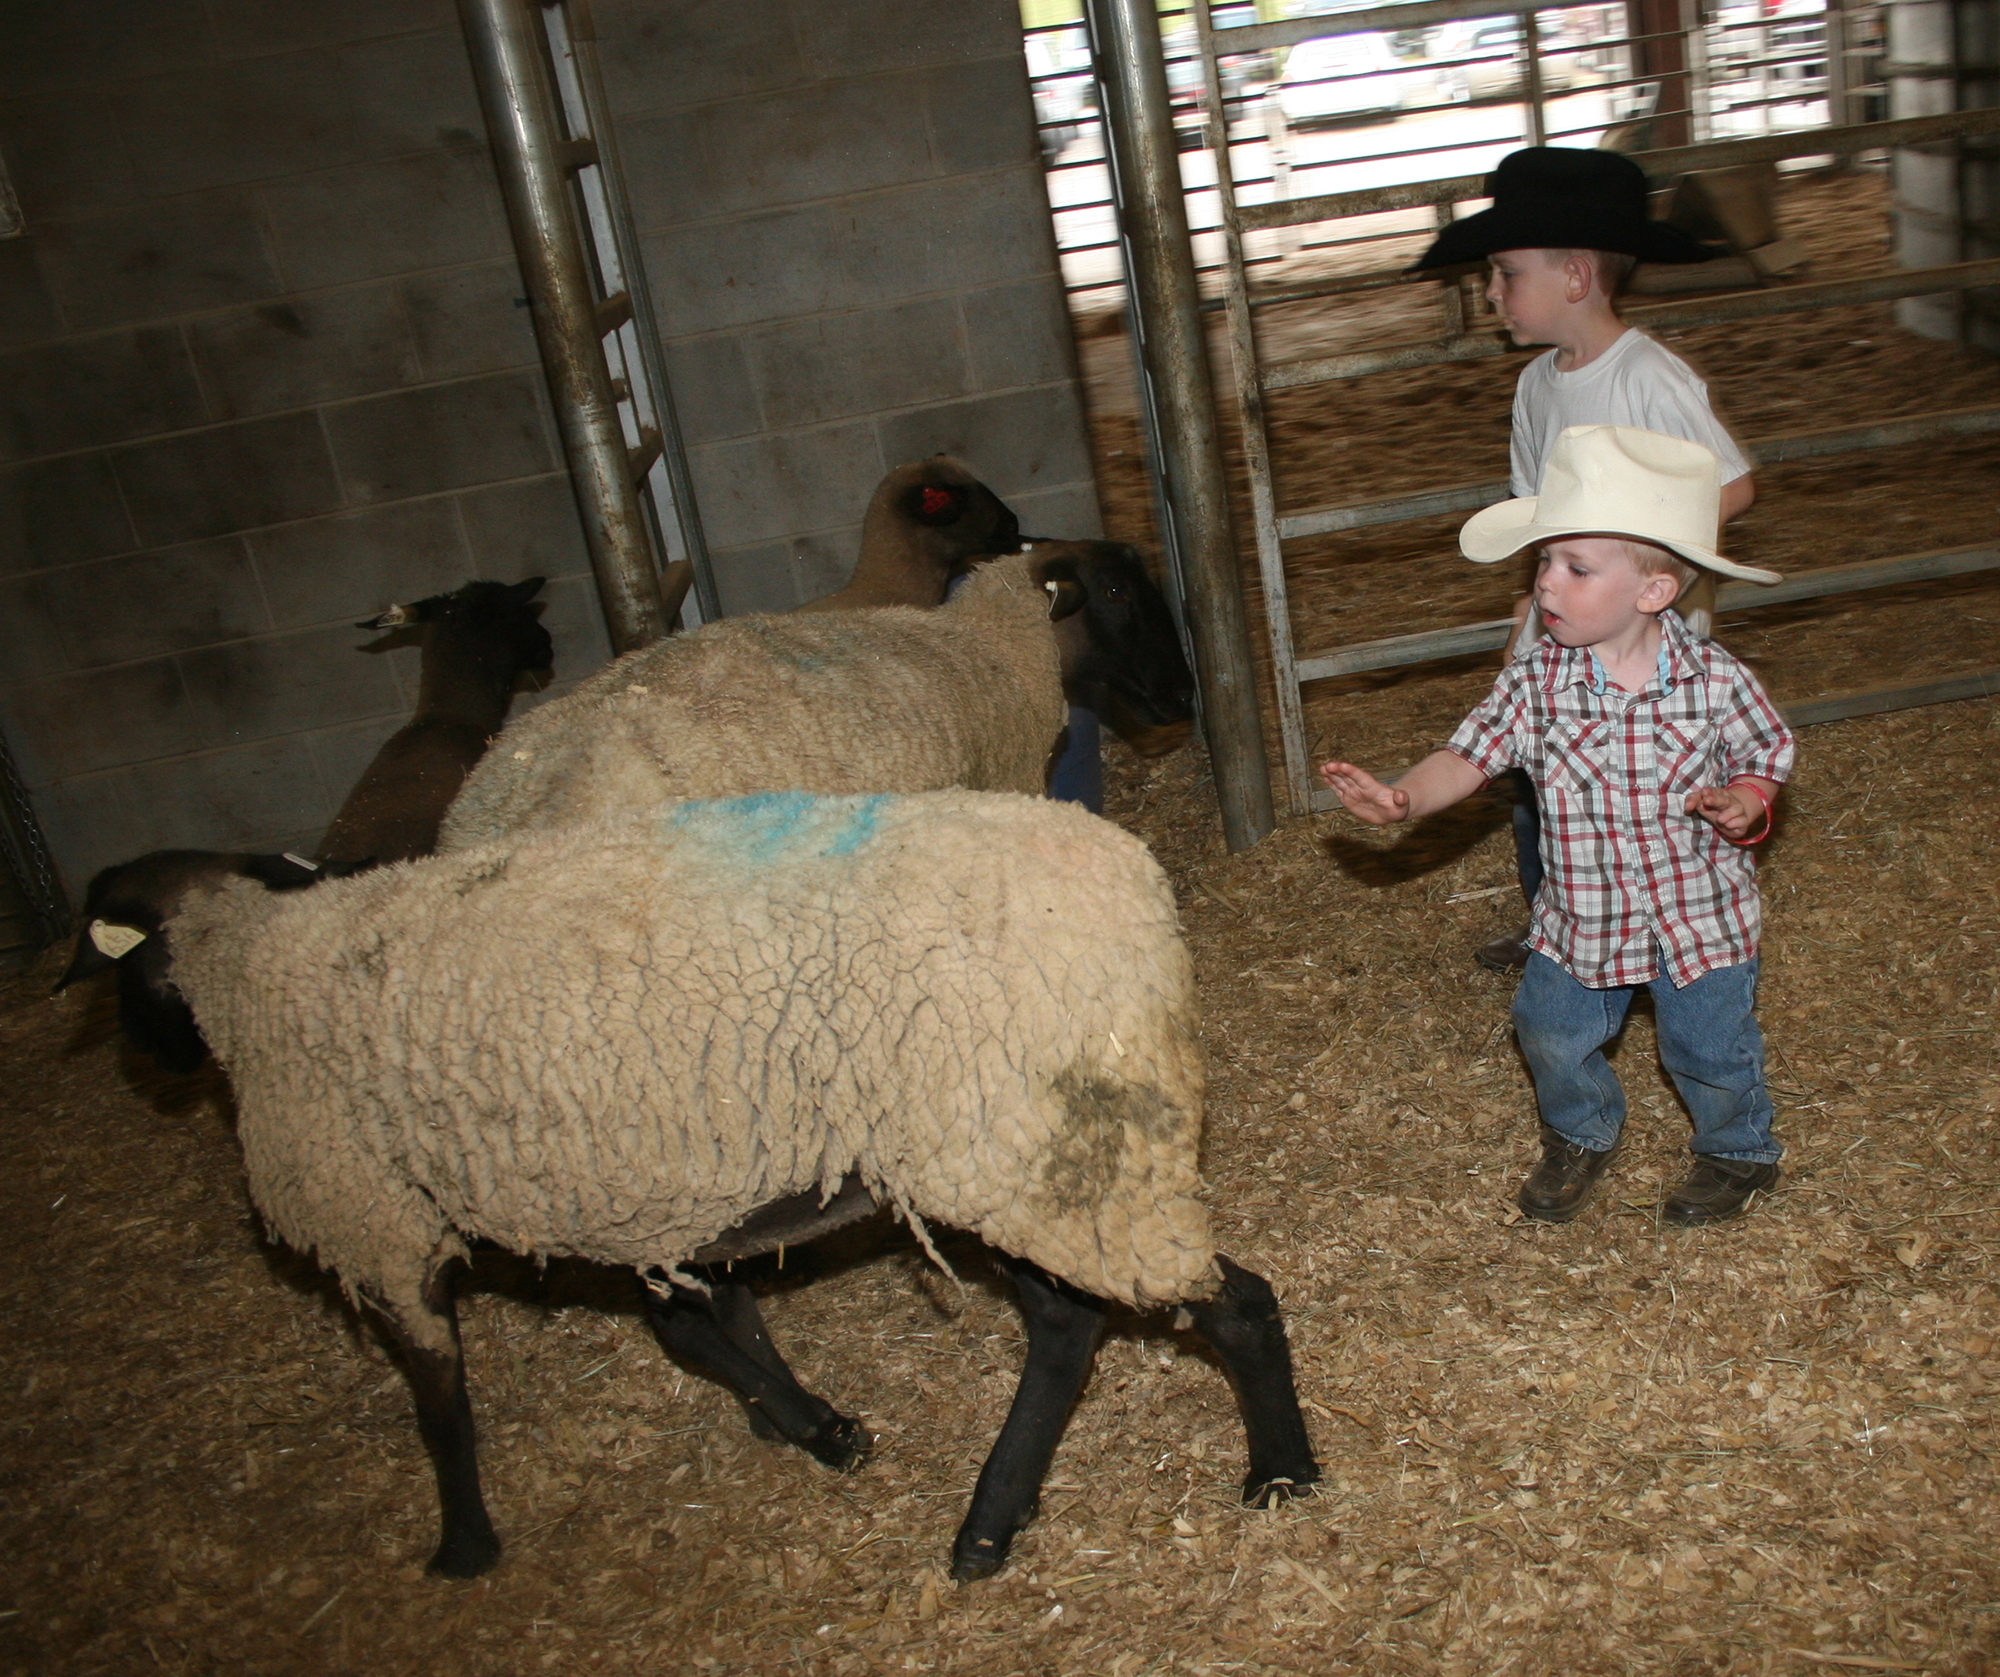 The Great Southland Stampede Rodeo runs April 18-20 in Athens. The 2013 rodeo features a whole host of new children's activities.